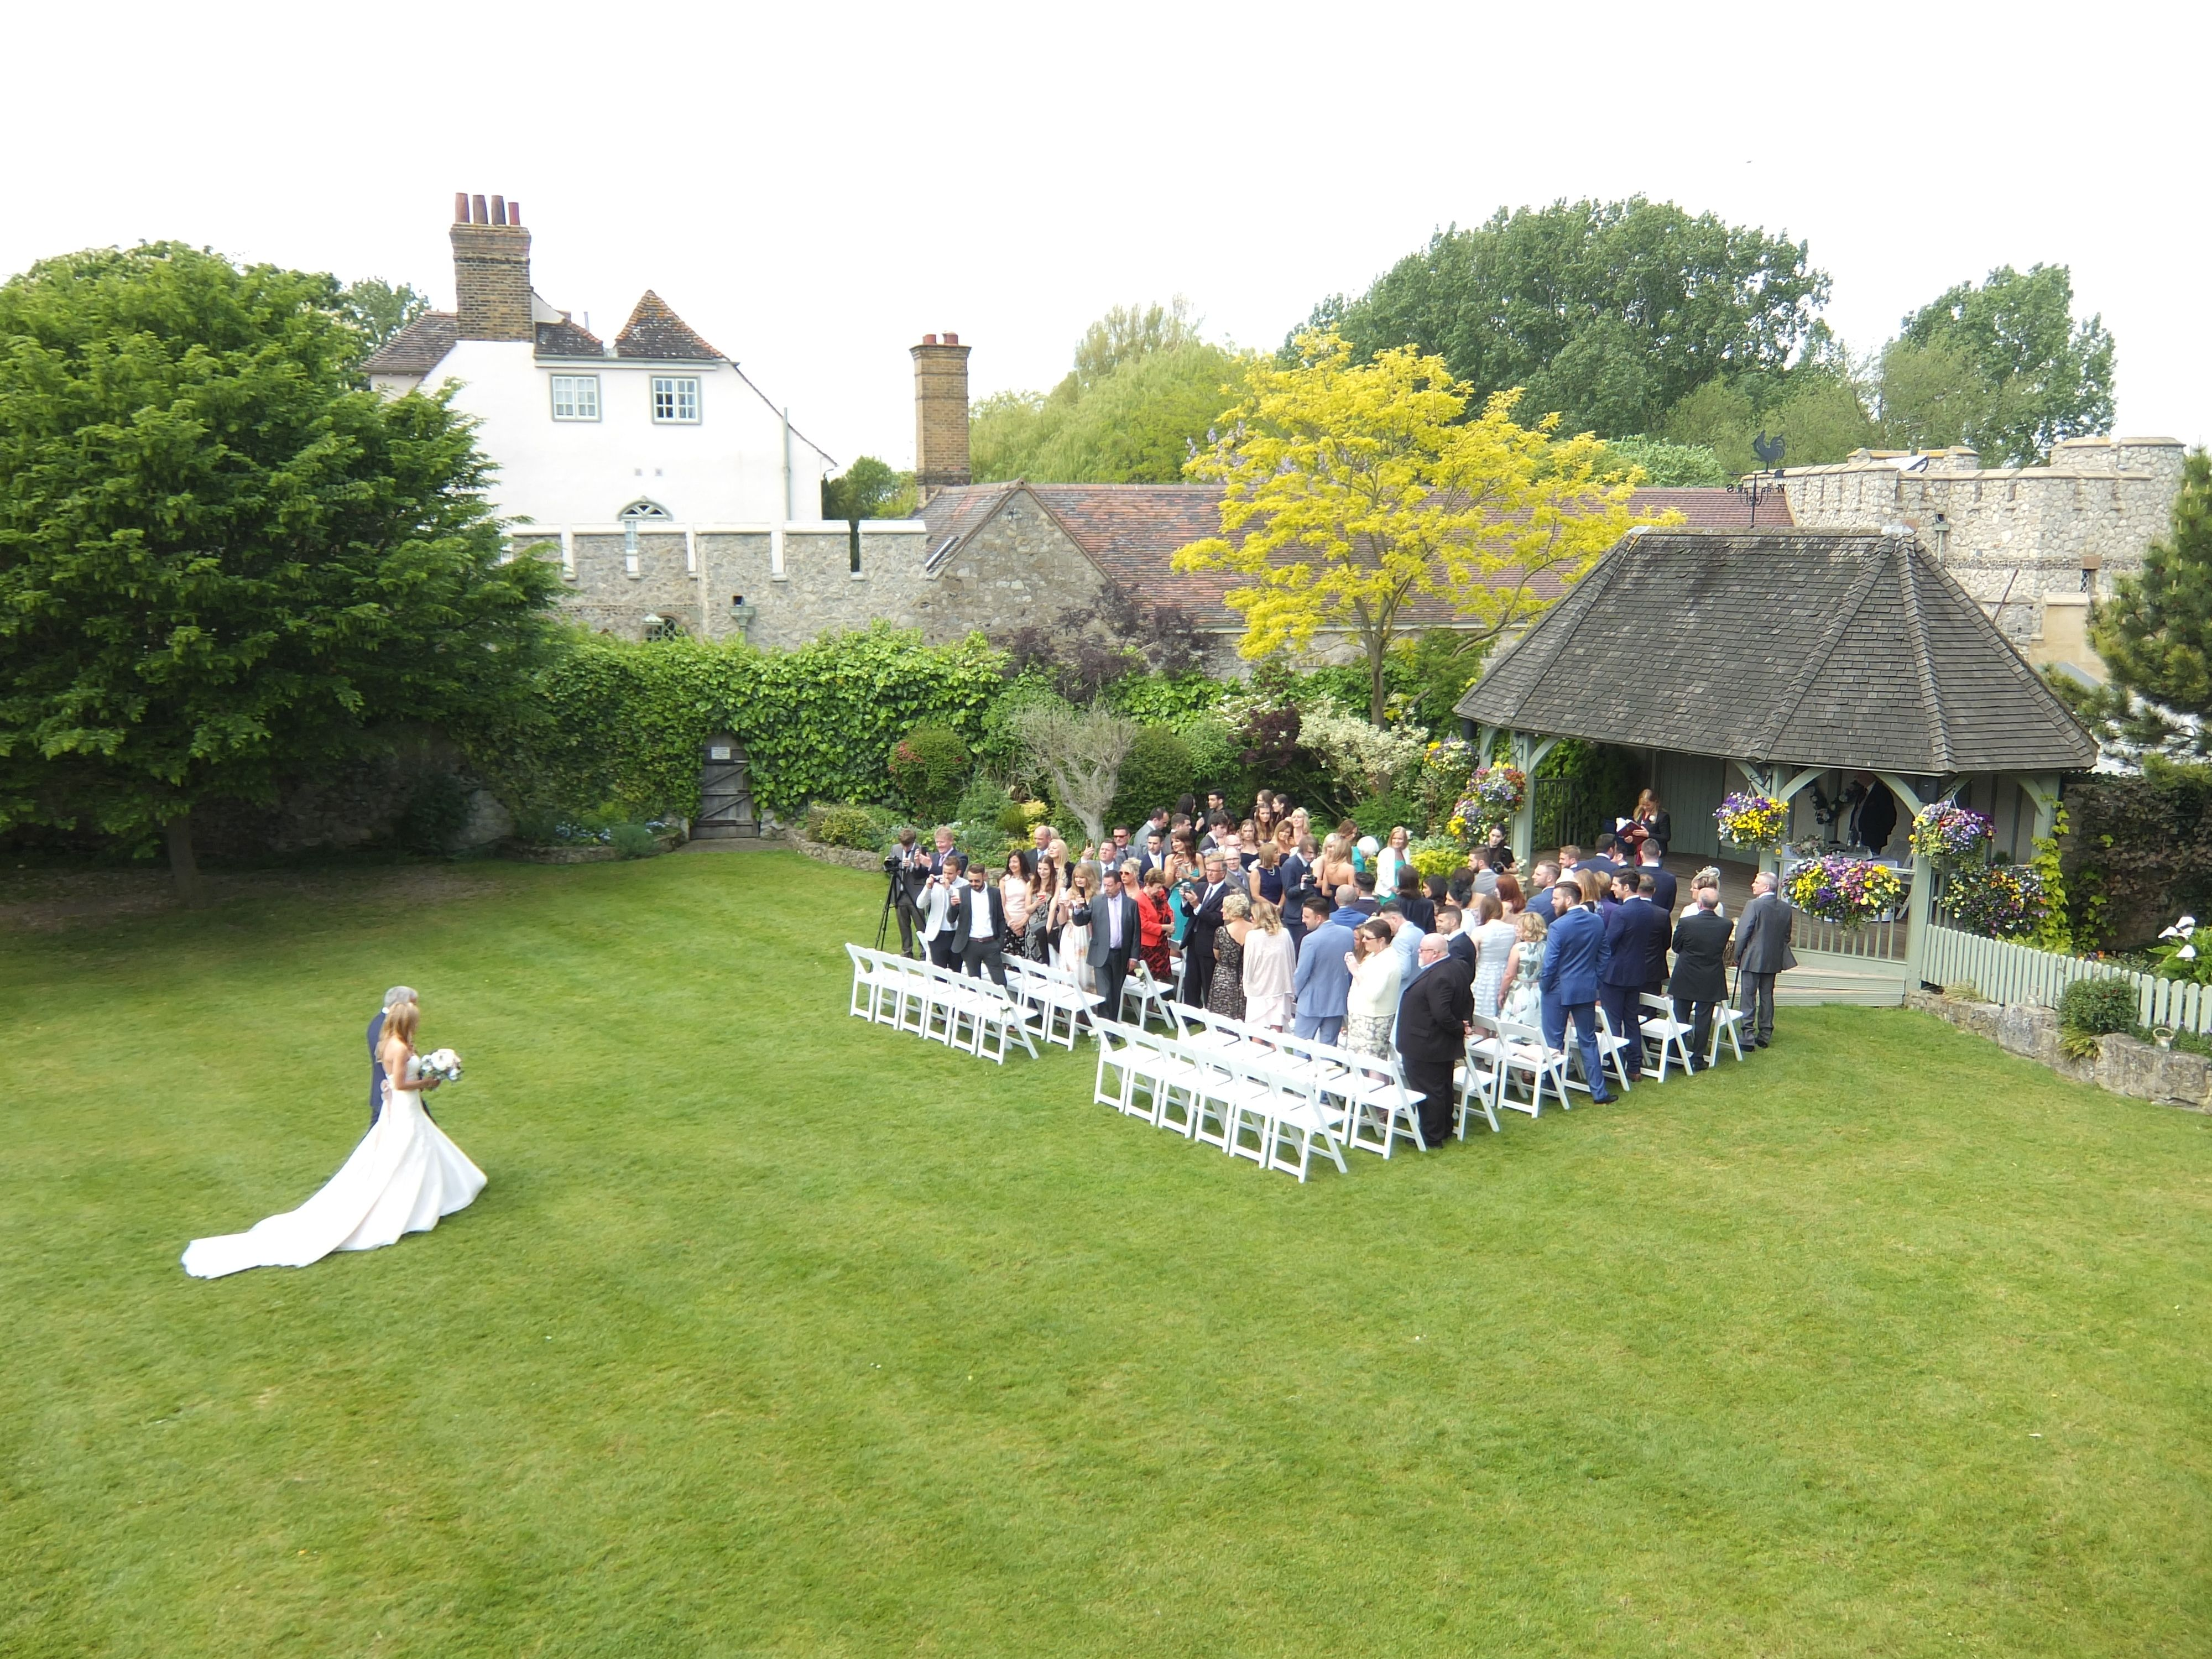 The Pavilion Set Up For An Outside Ceremony